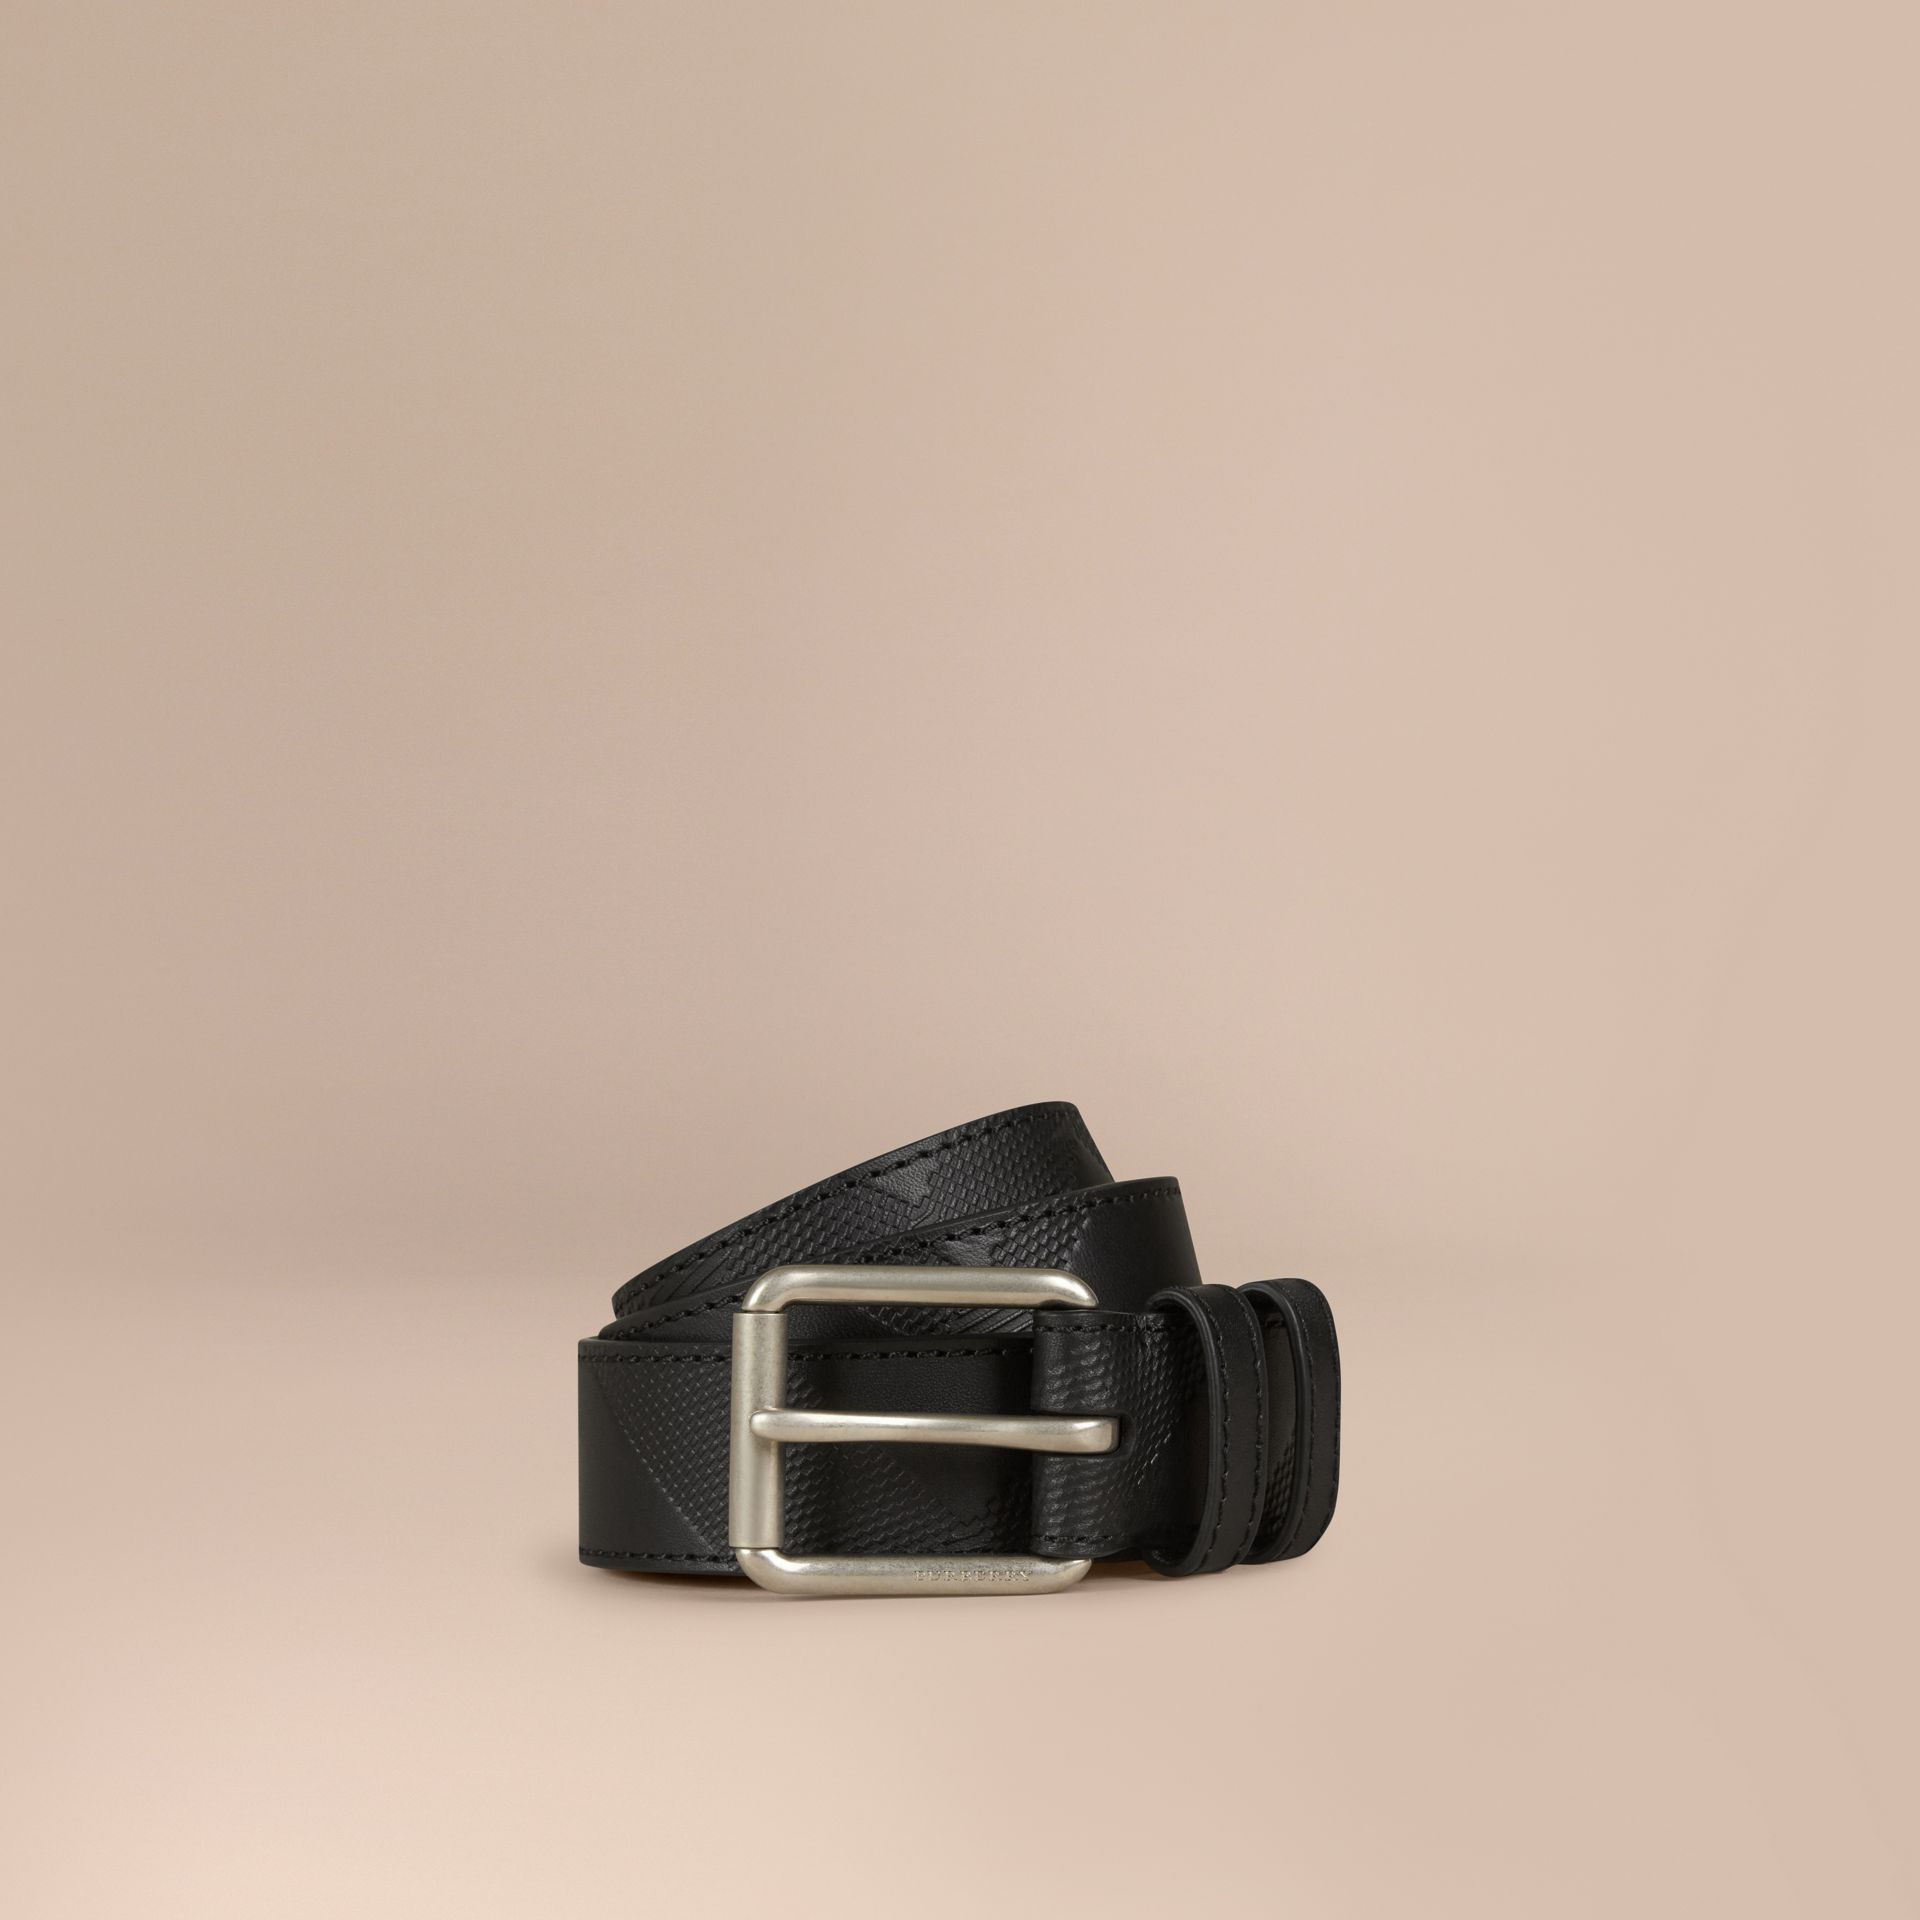 Black Check-Embossed Leather Belt Black - gallery image 1